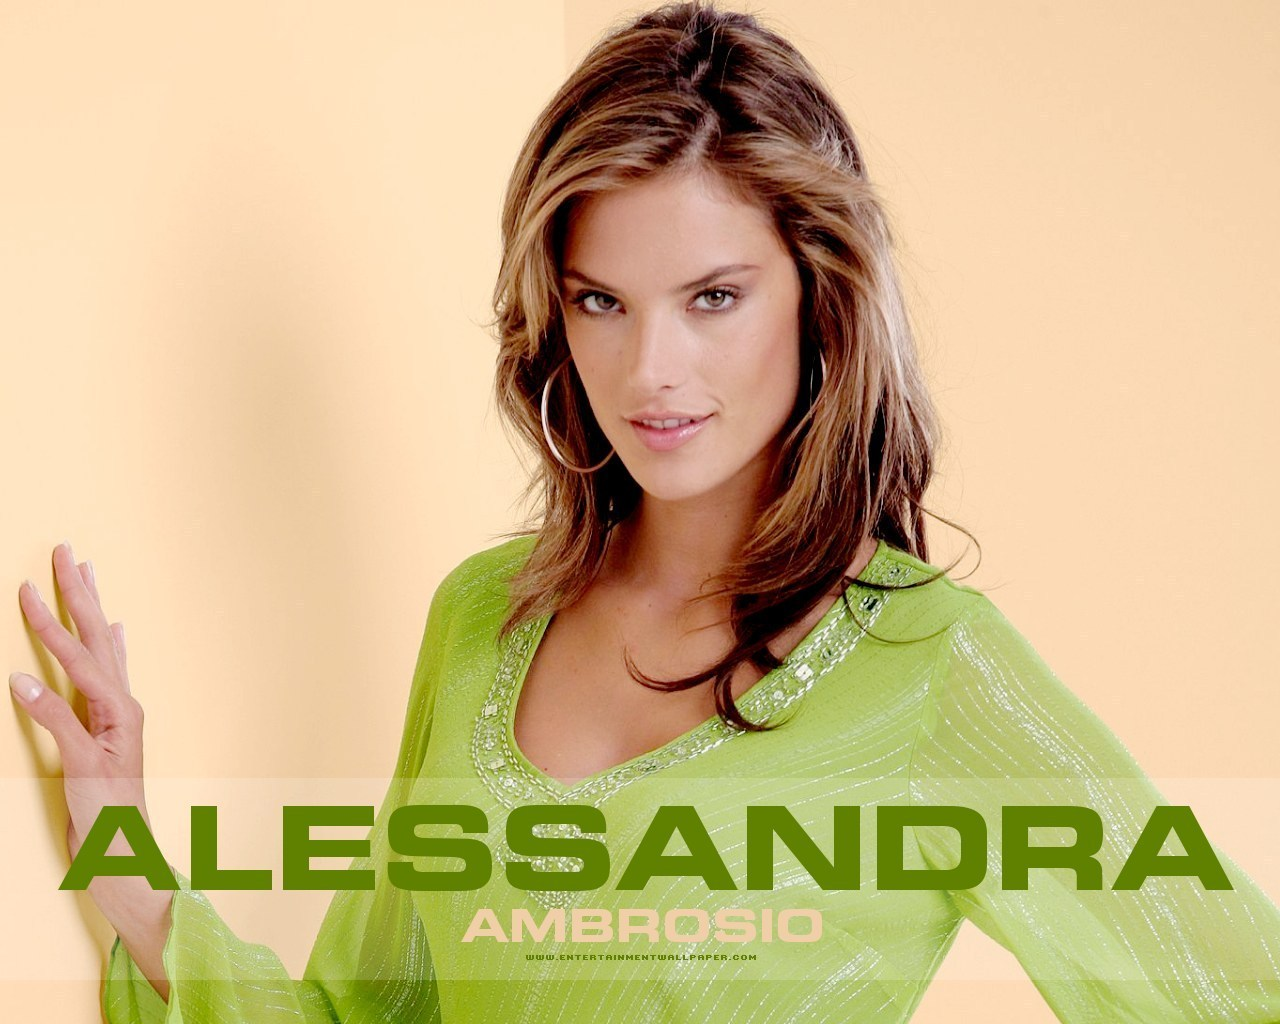 Alessandra download wallpaper